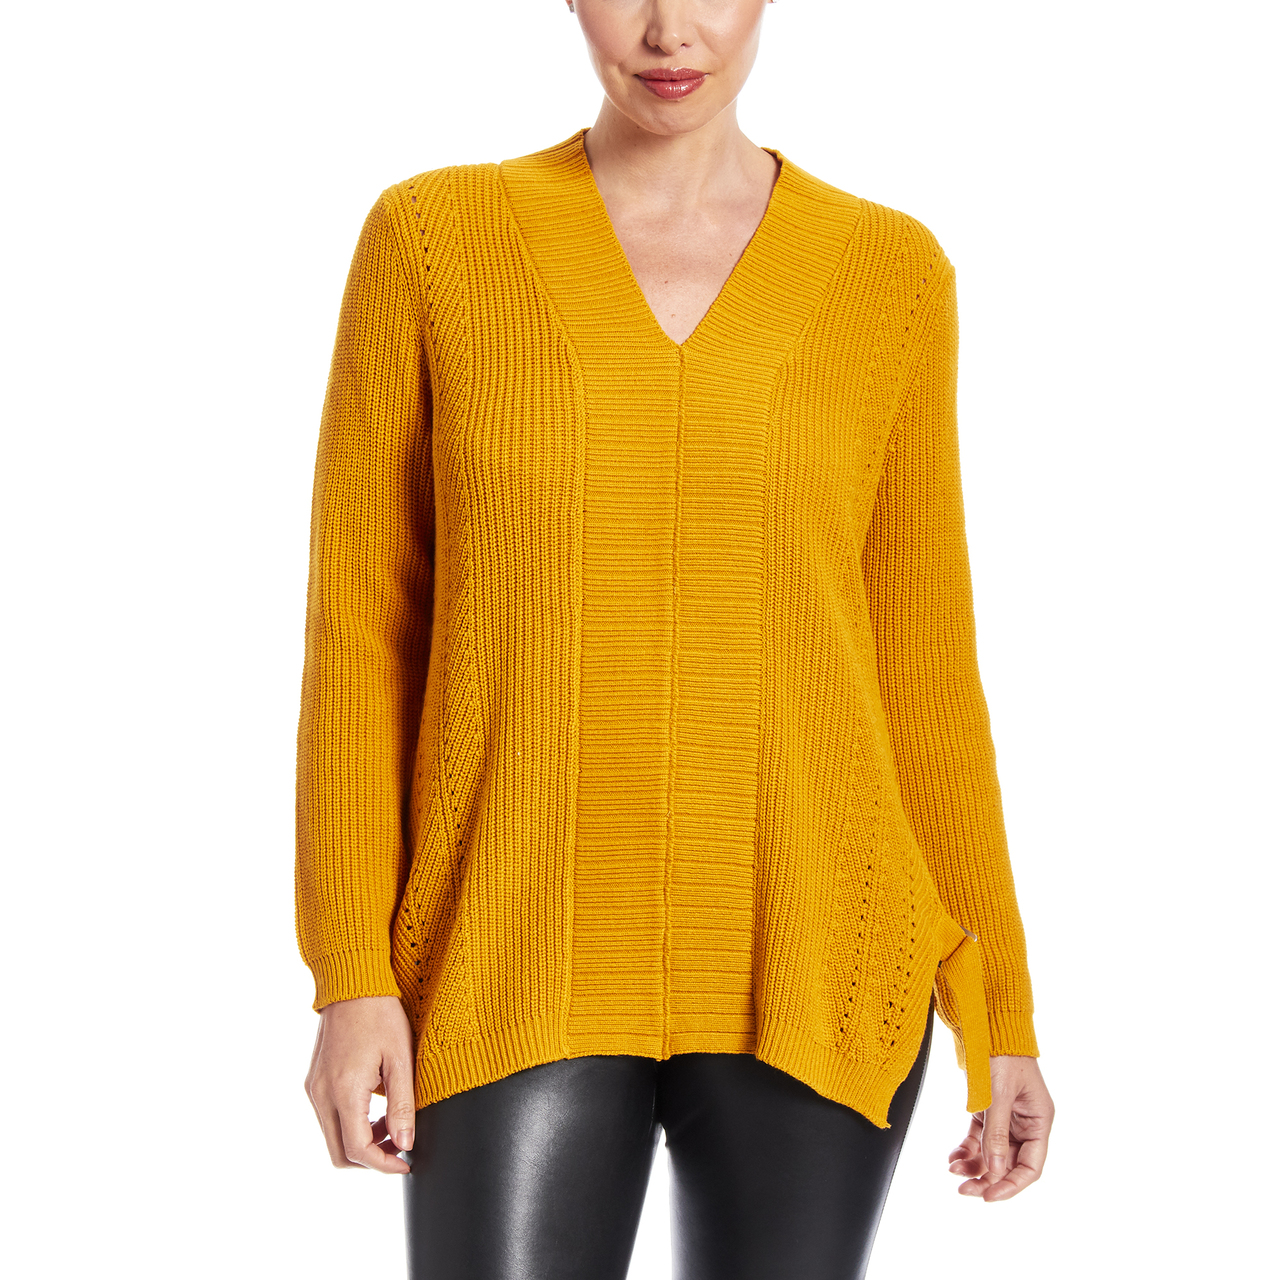 Mixed Stitch Vneck Sweater With Side Buckles in Gold